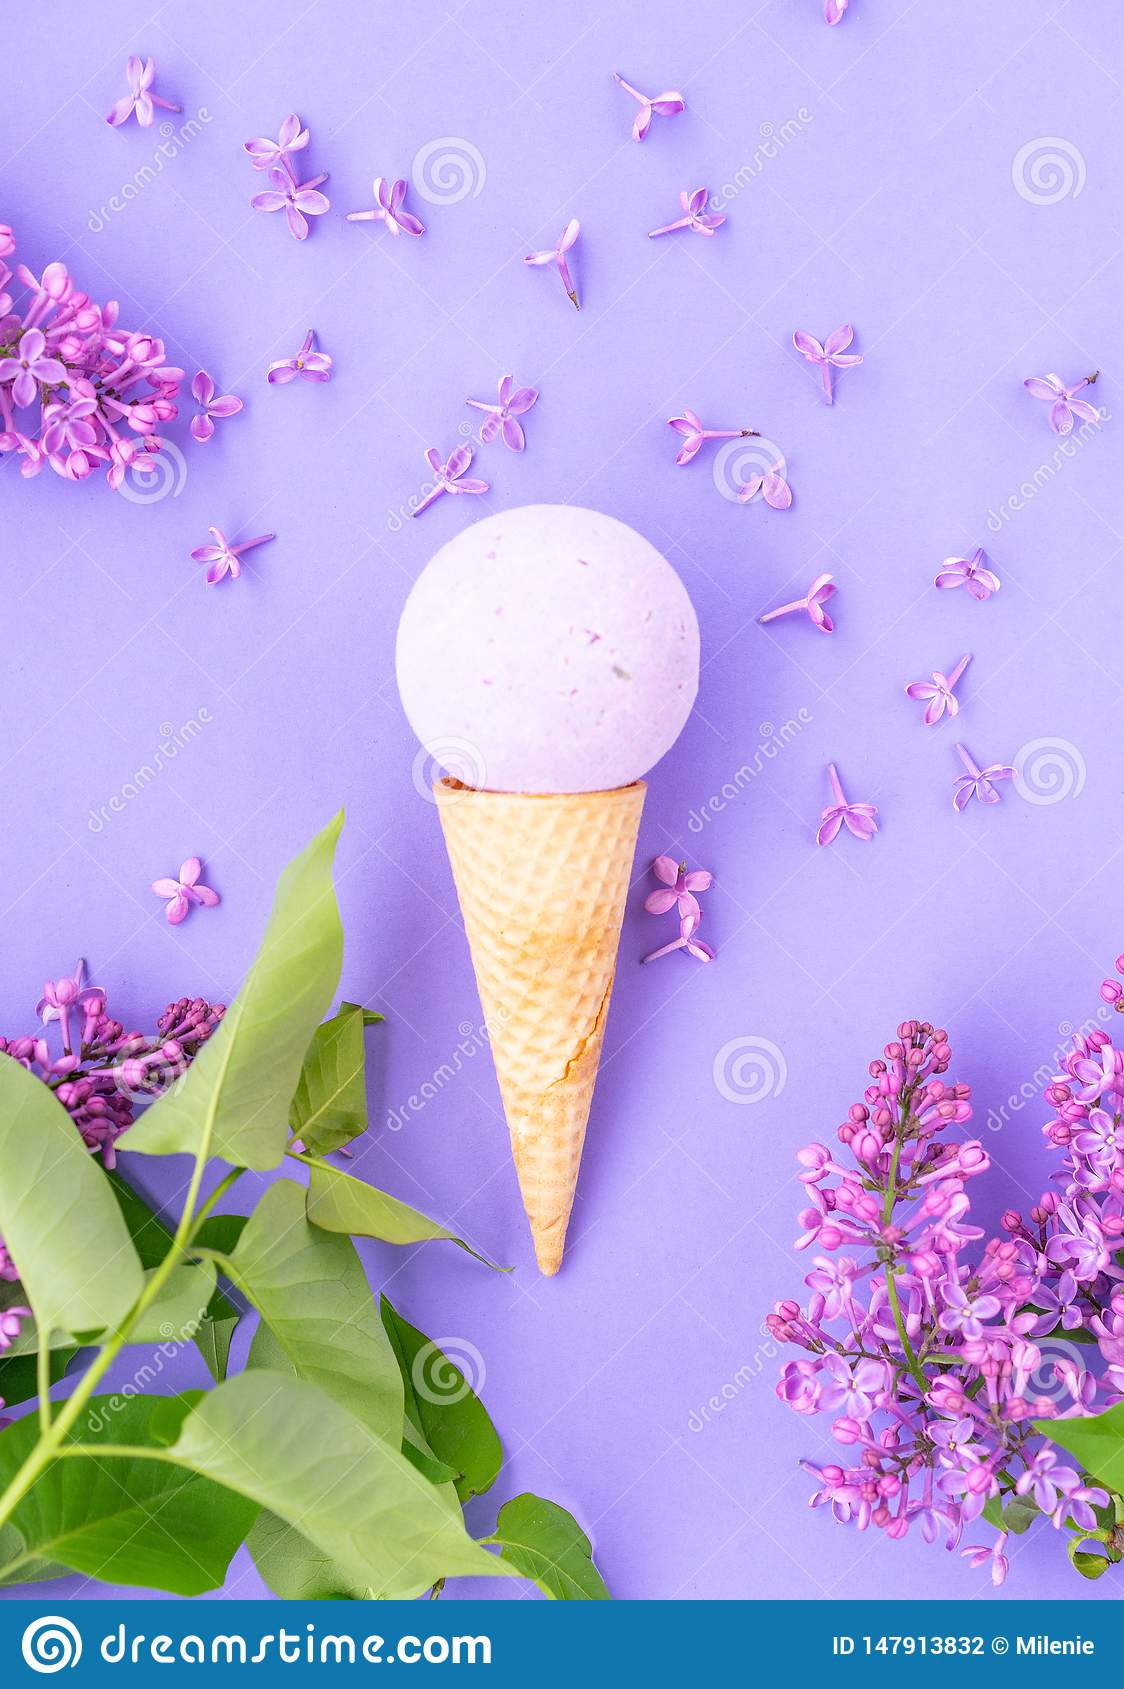 Composition of ice cream cone with bath ball on a violet background. Bathroom cosmetic accessories